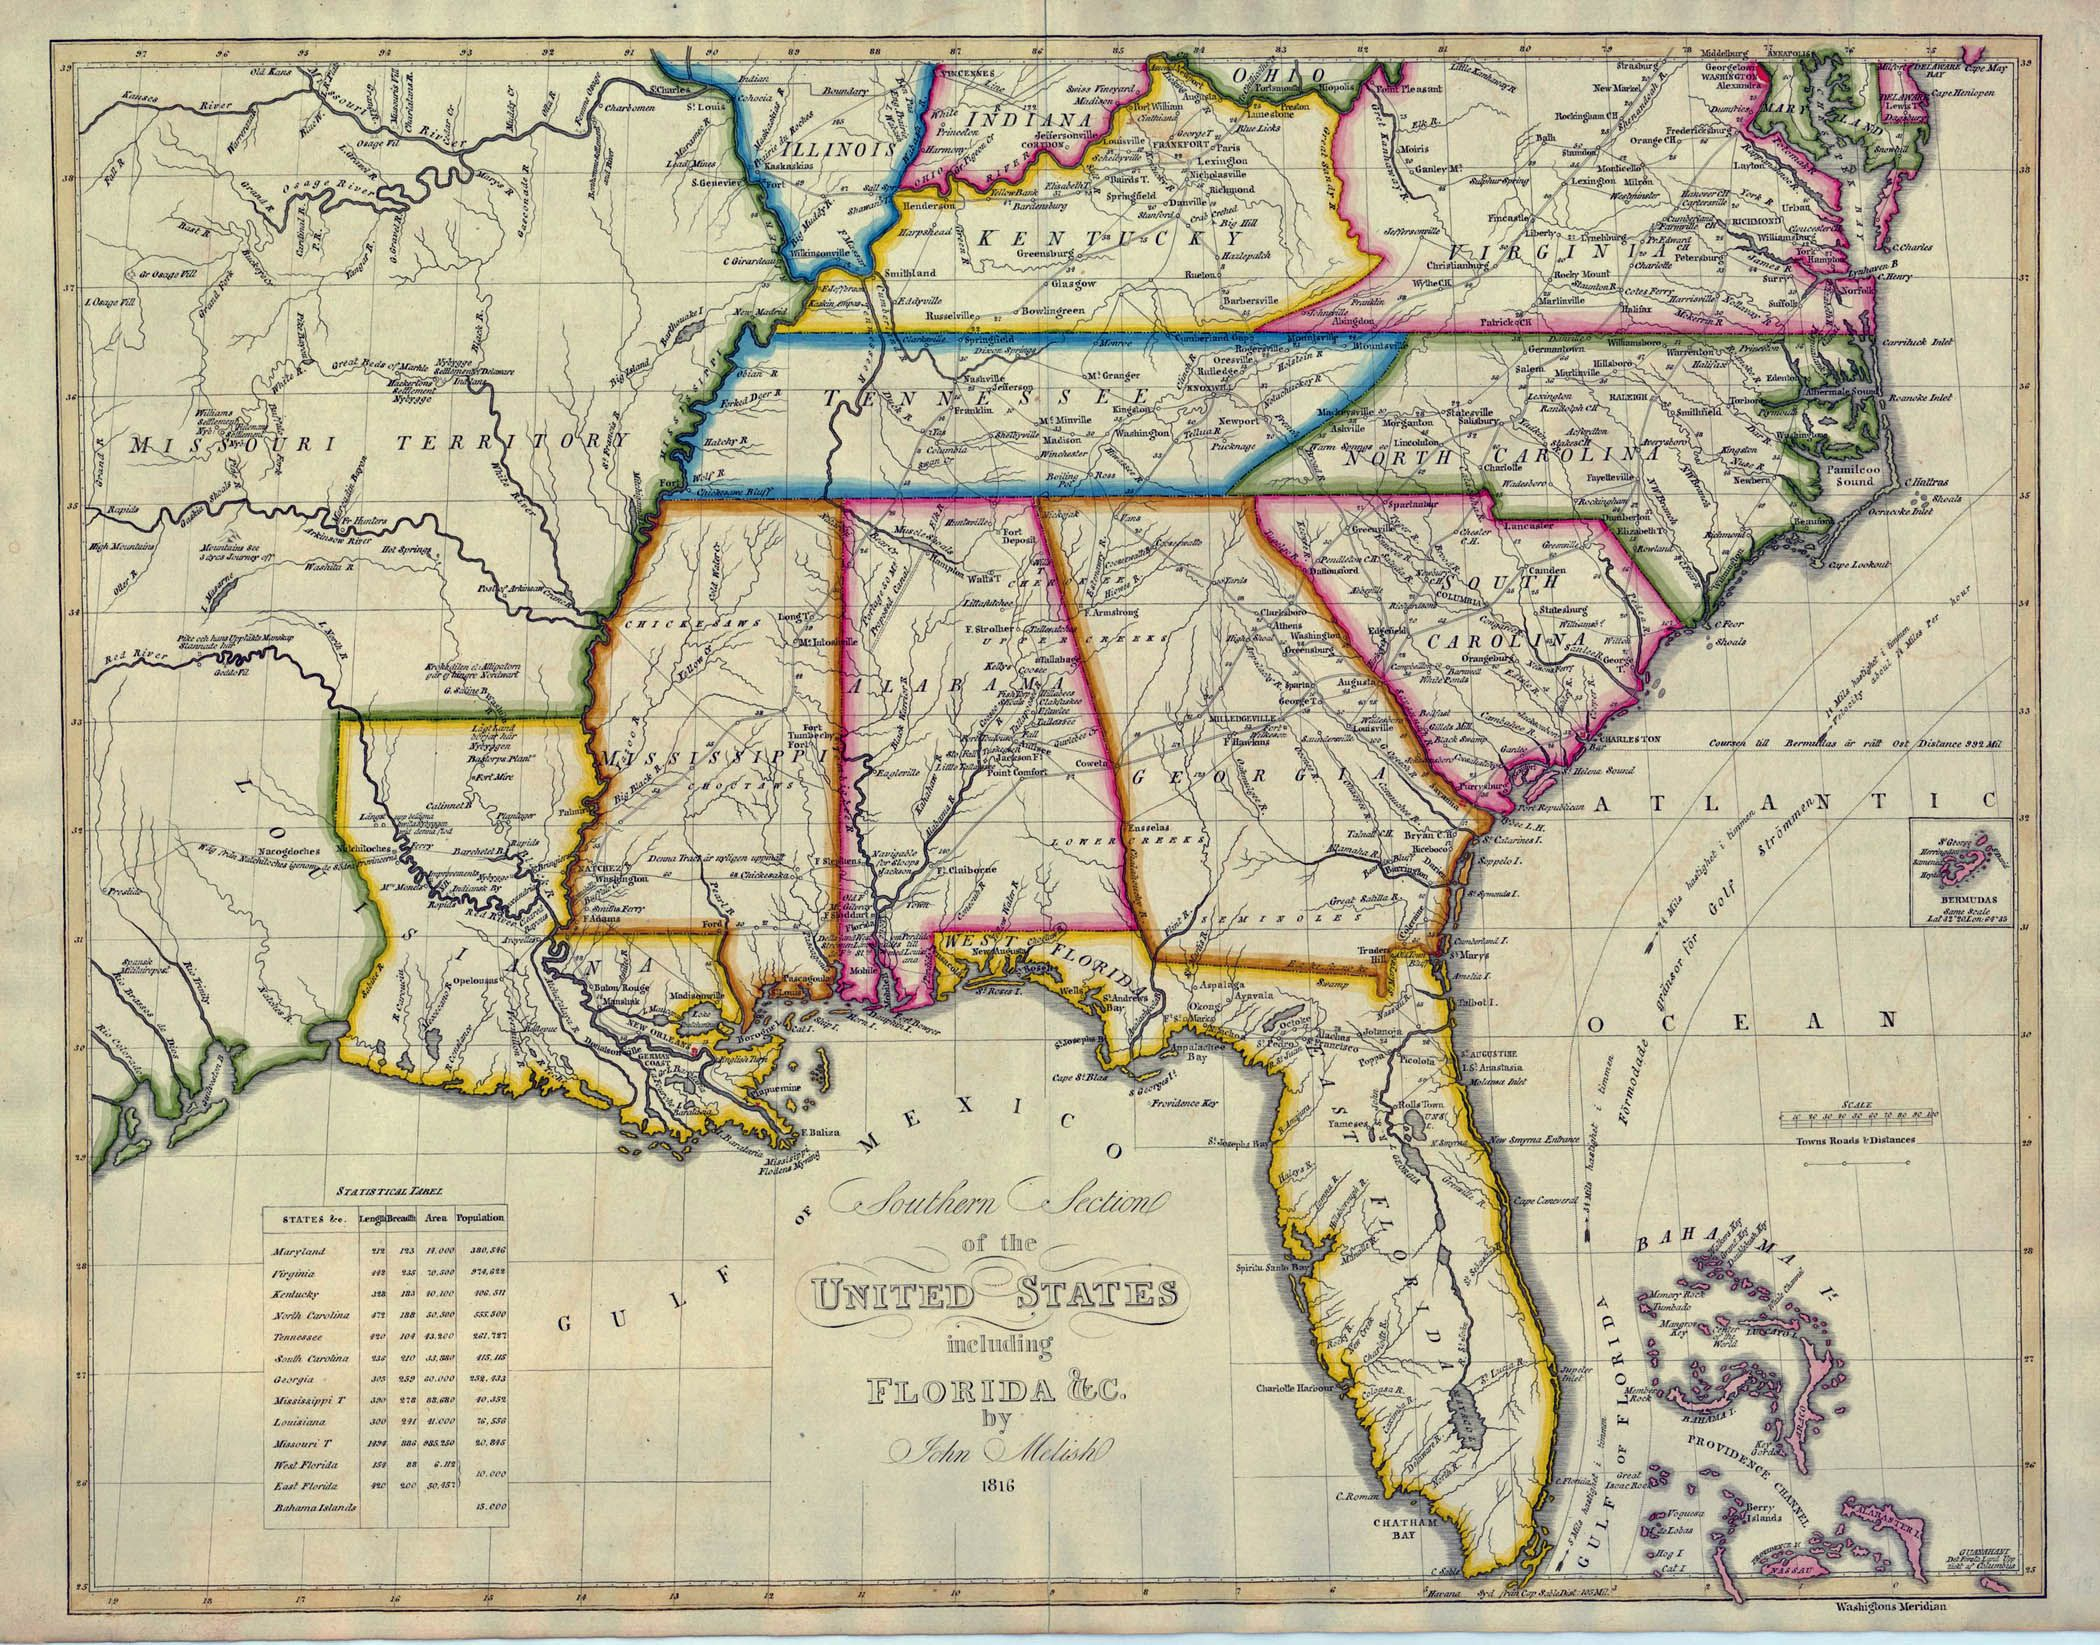 Atlanta GA Map Of Southern United States  Southern United SE - Southeast us rail map